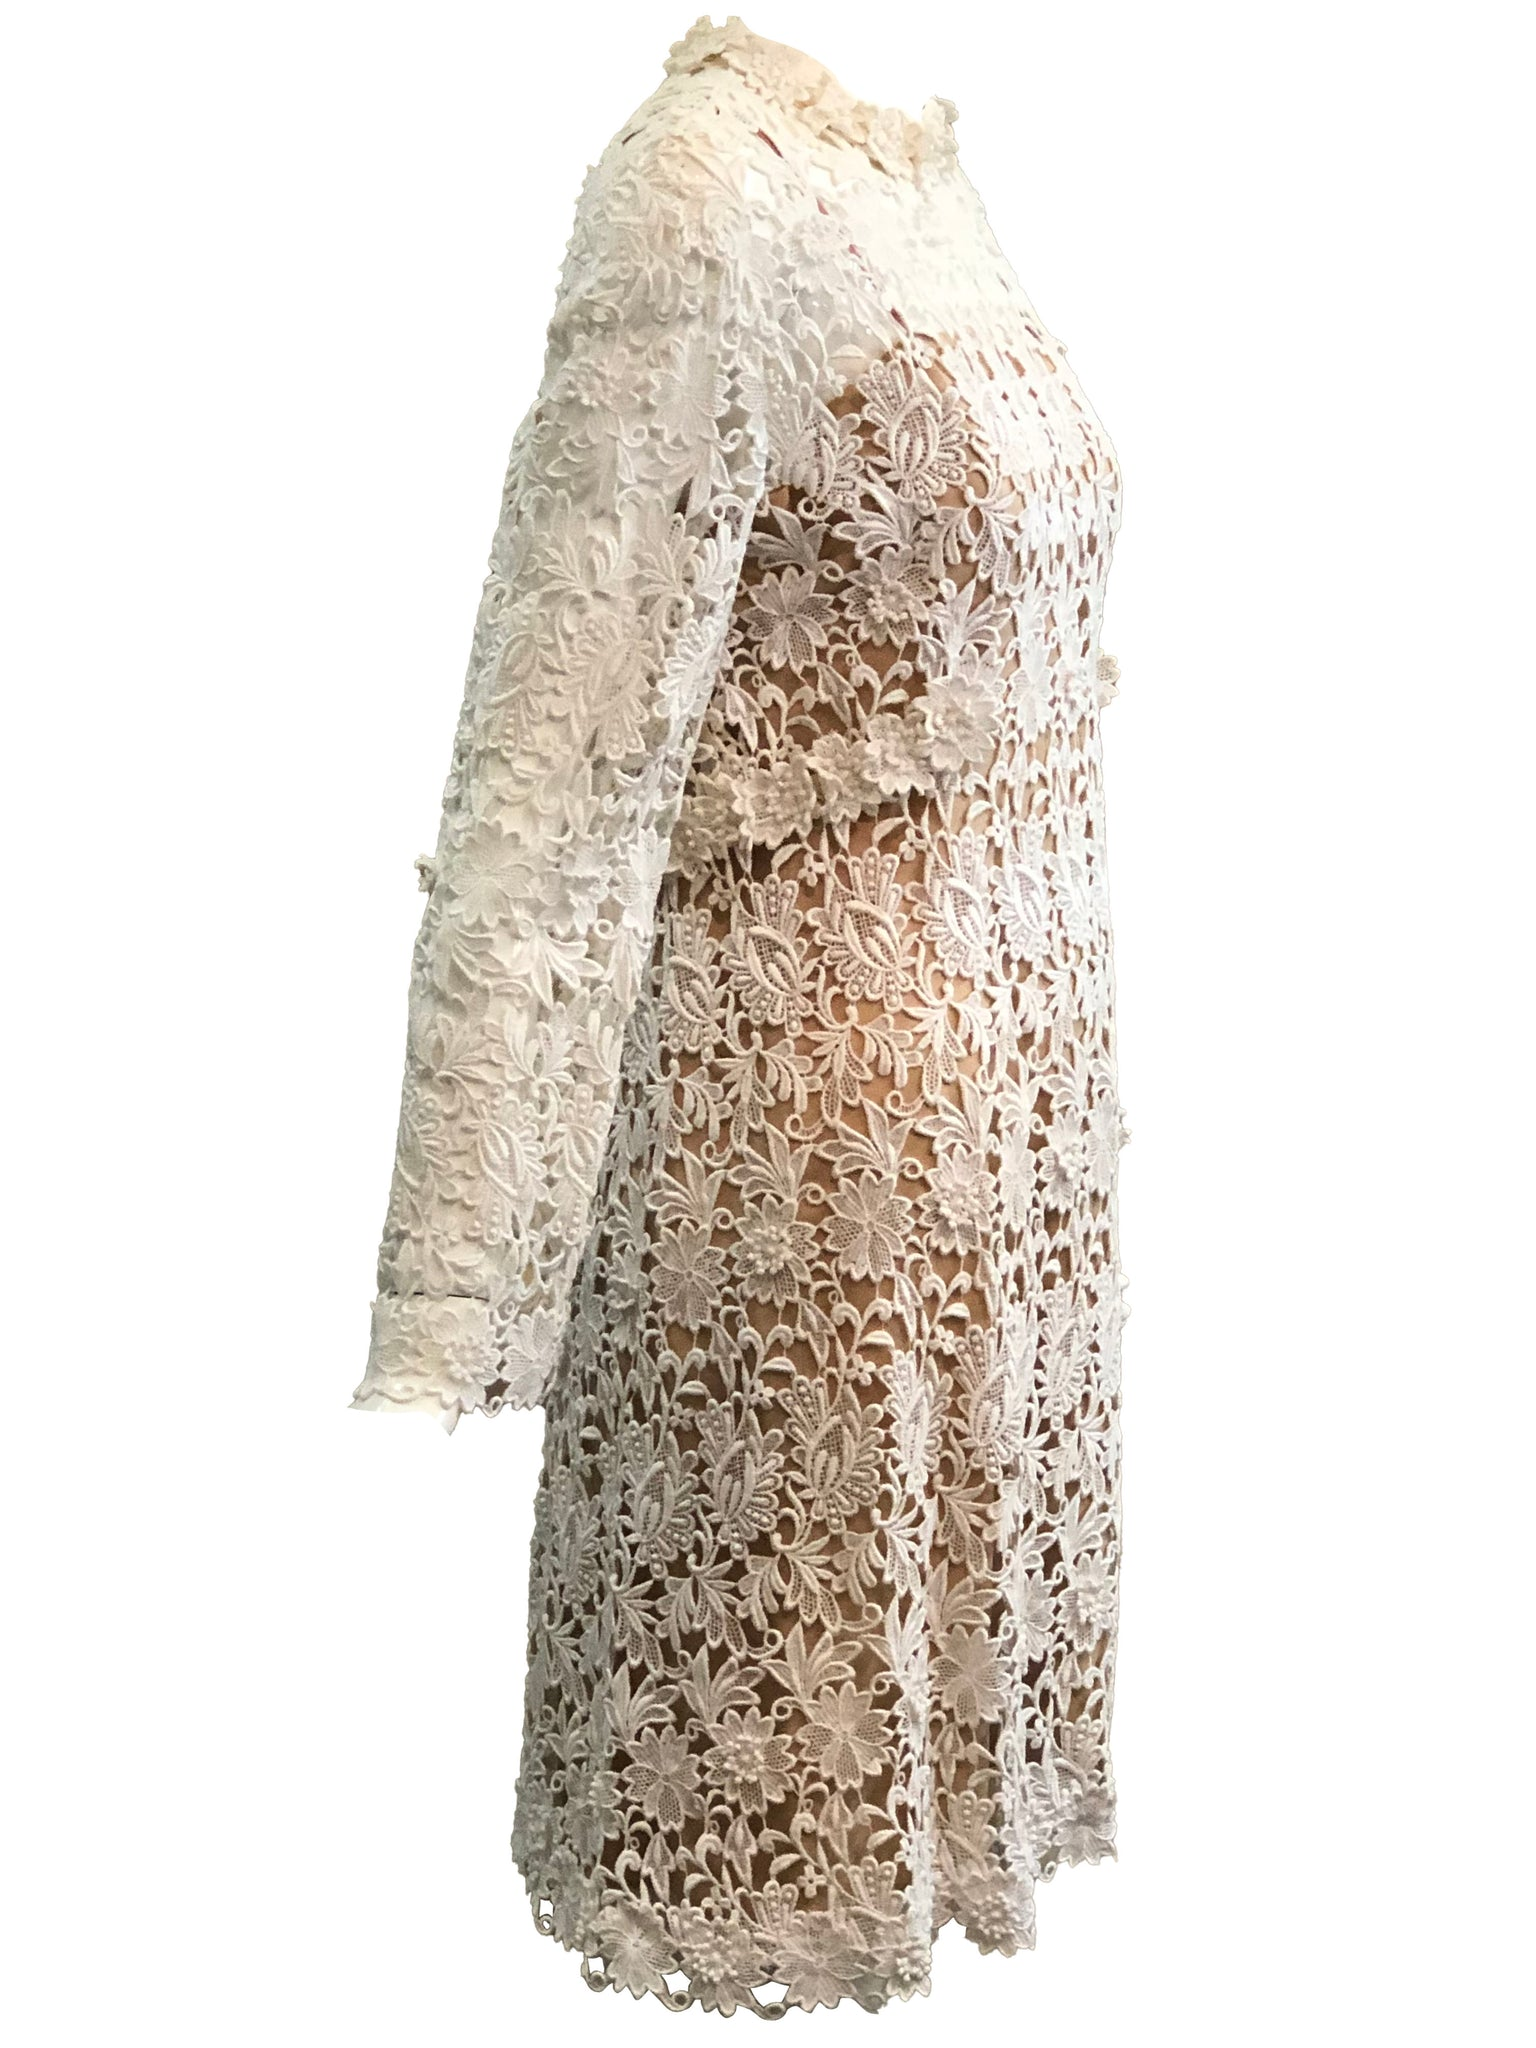 Mollie Parnis 70s Dress White Lace Bridal with Nude Underlay SIDE 2 of 4